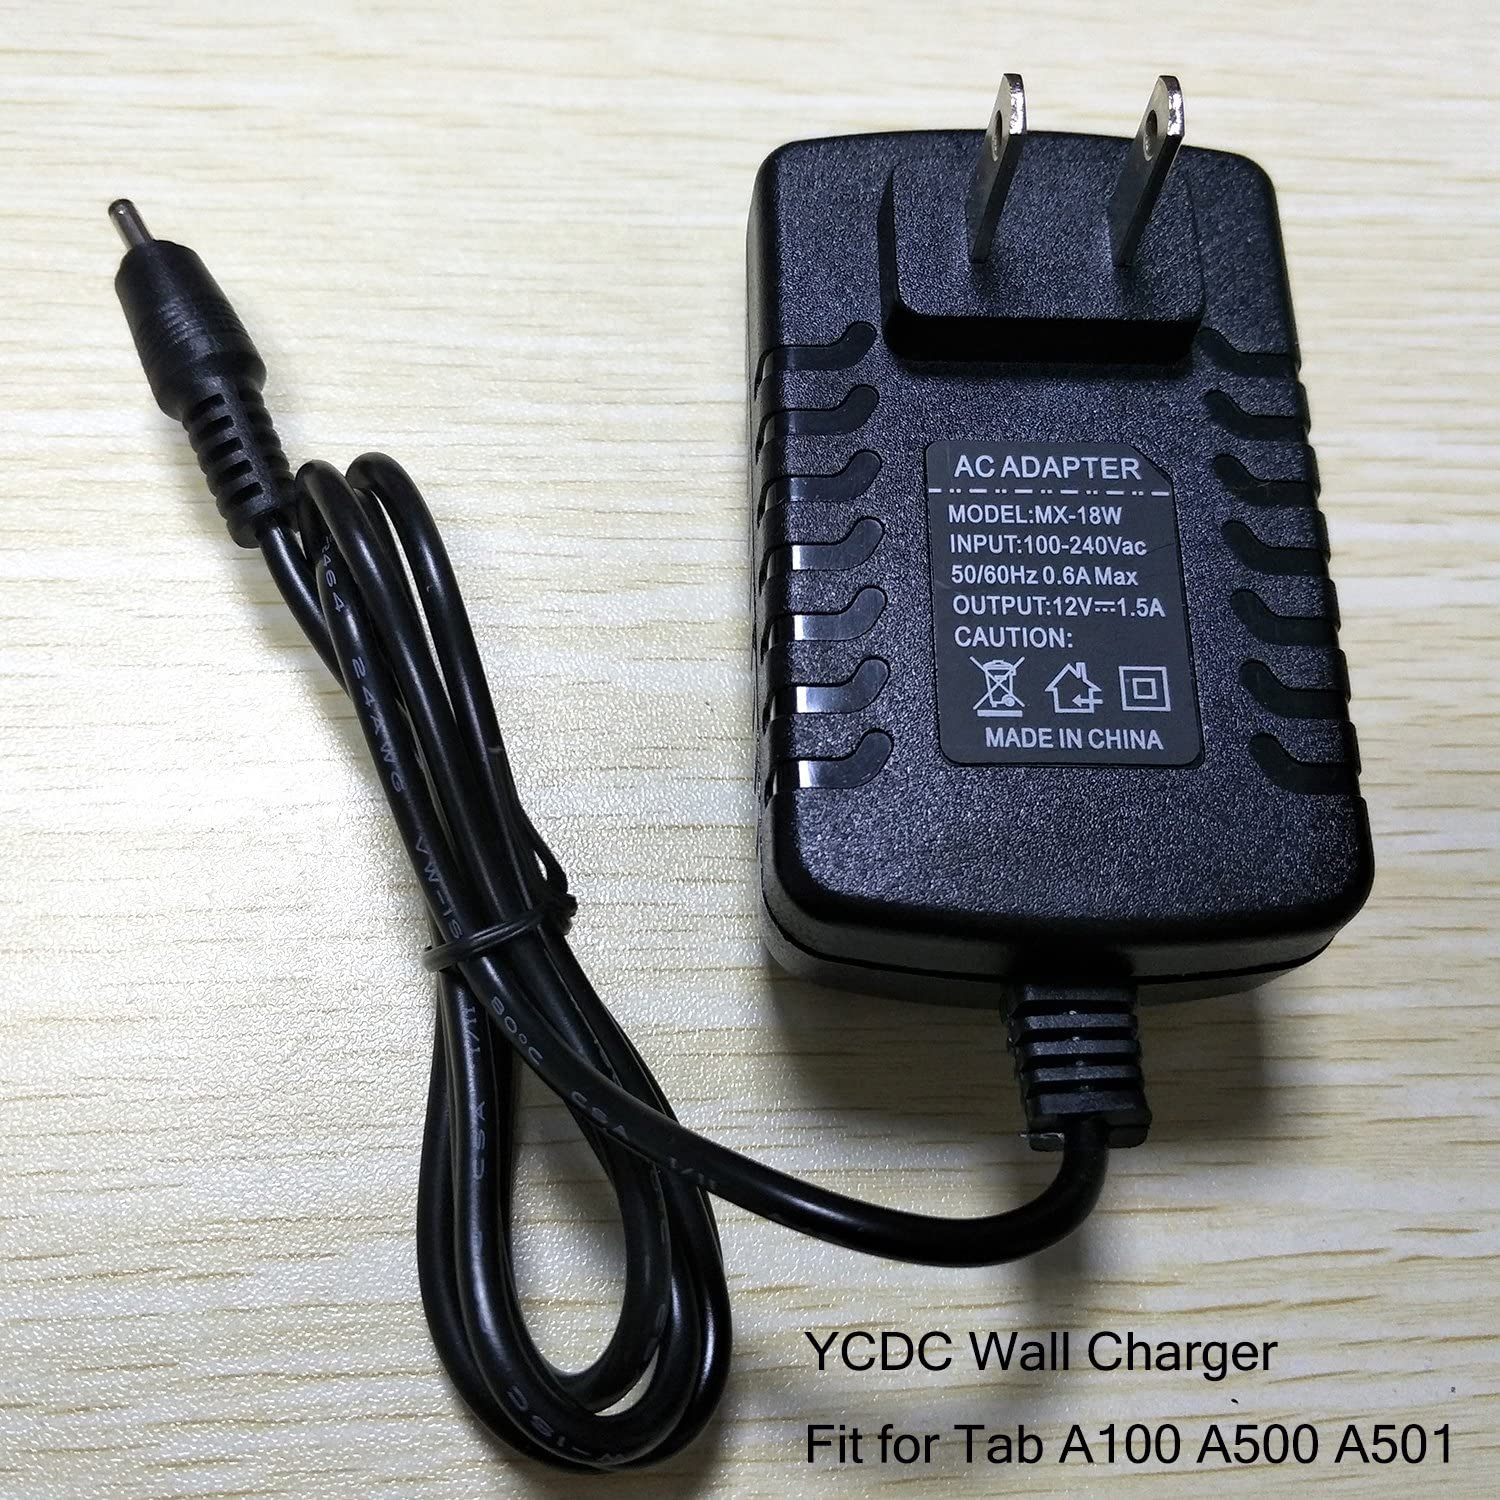 YCDC 12V/1.5A Wall Charger Adapter Acer Iconia Tab A100 A500 A501 Tablet Power Supply, Home Travel Wall Charger,US Plug